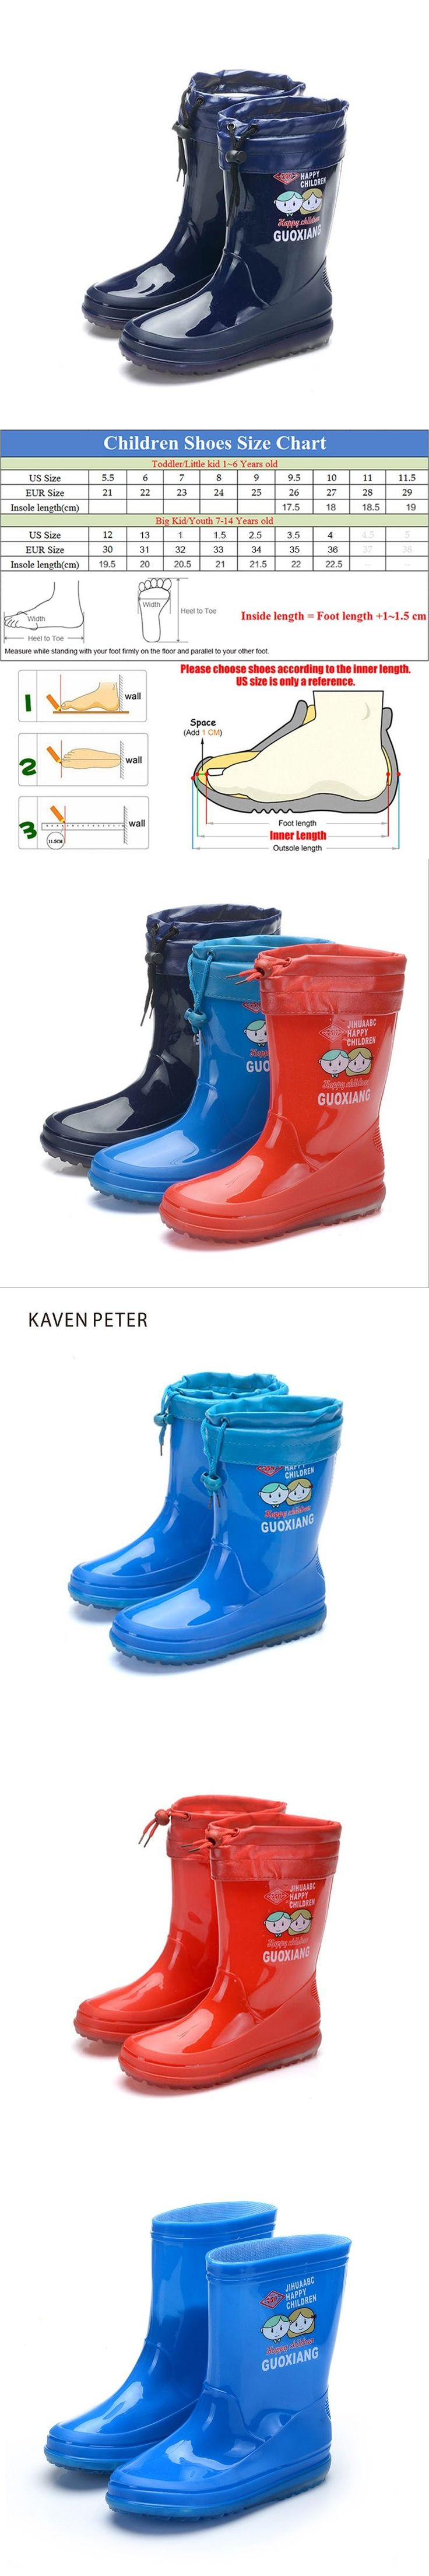 Children's rubber boots for girls boys kids rain boots PVC non-slip waterproof with cotton sets baby boots outdoor shoes Botas #babyrainboots